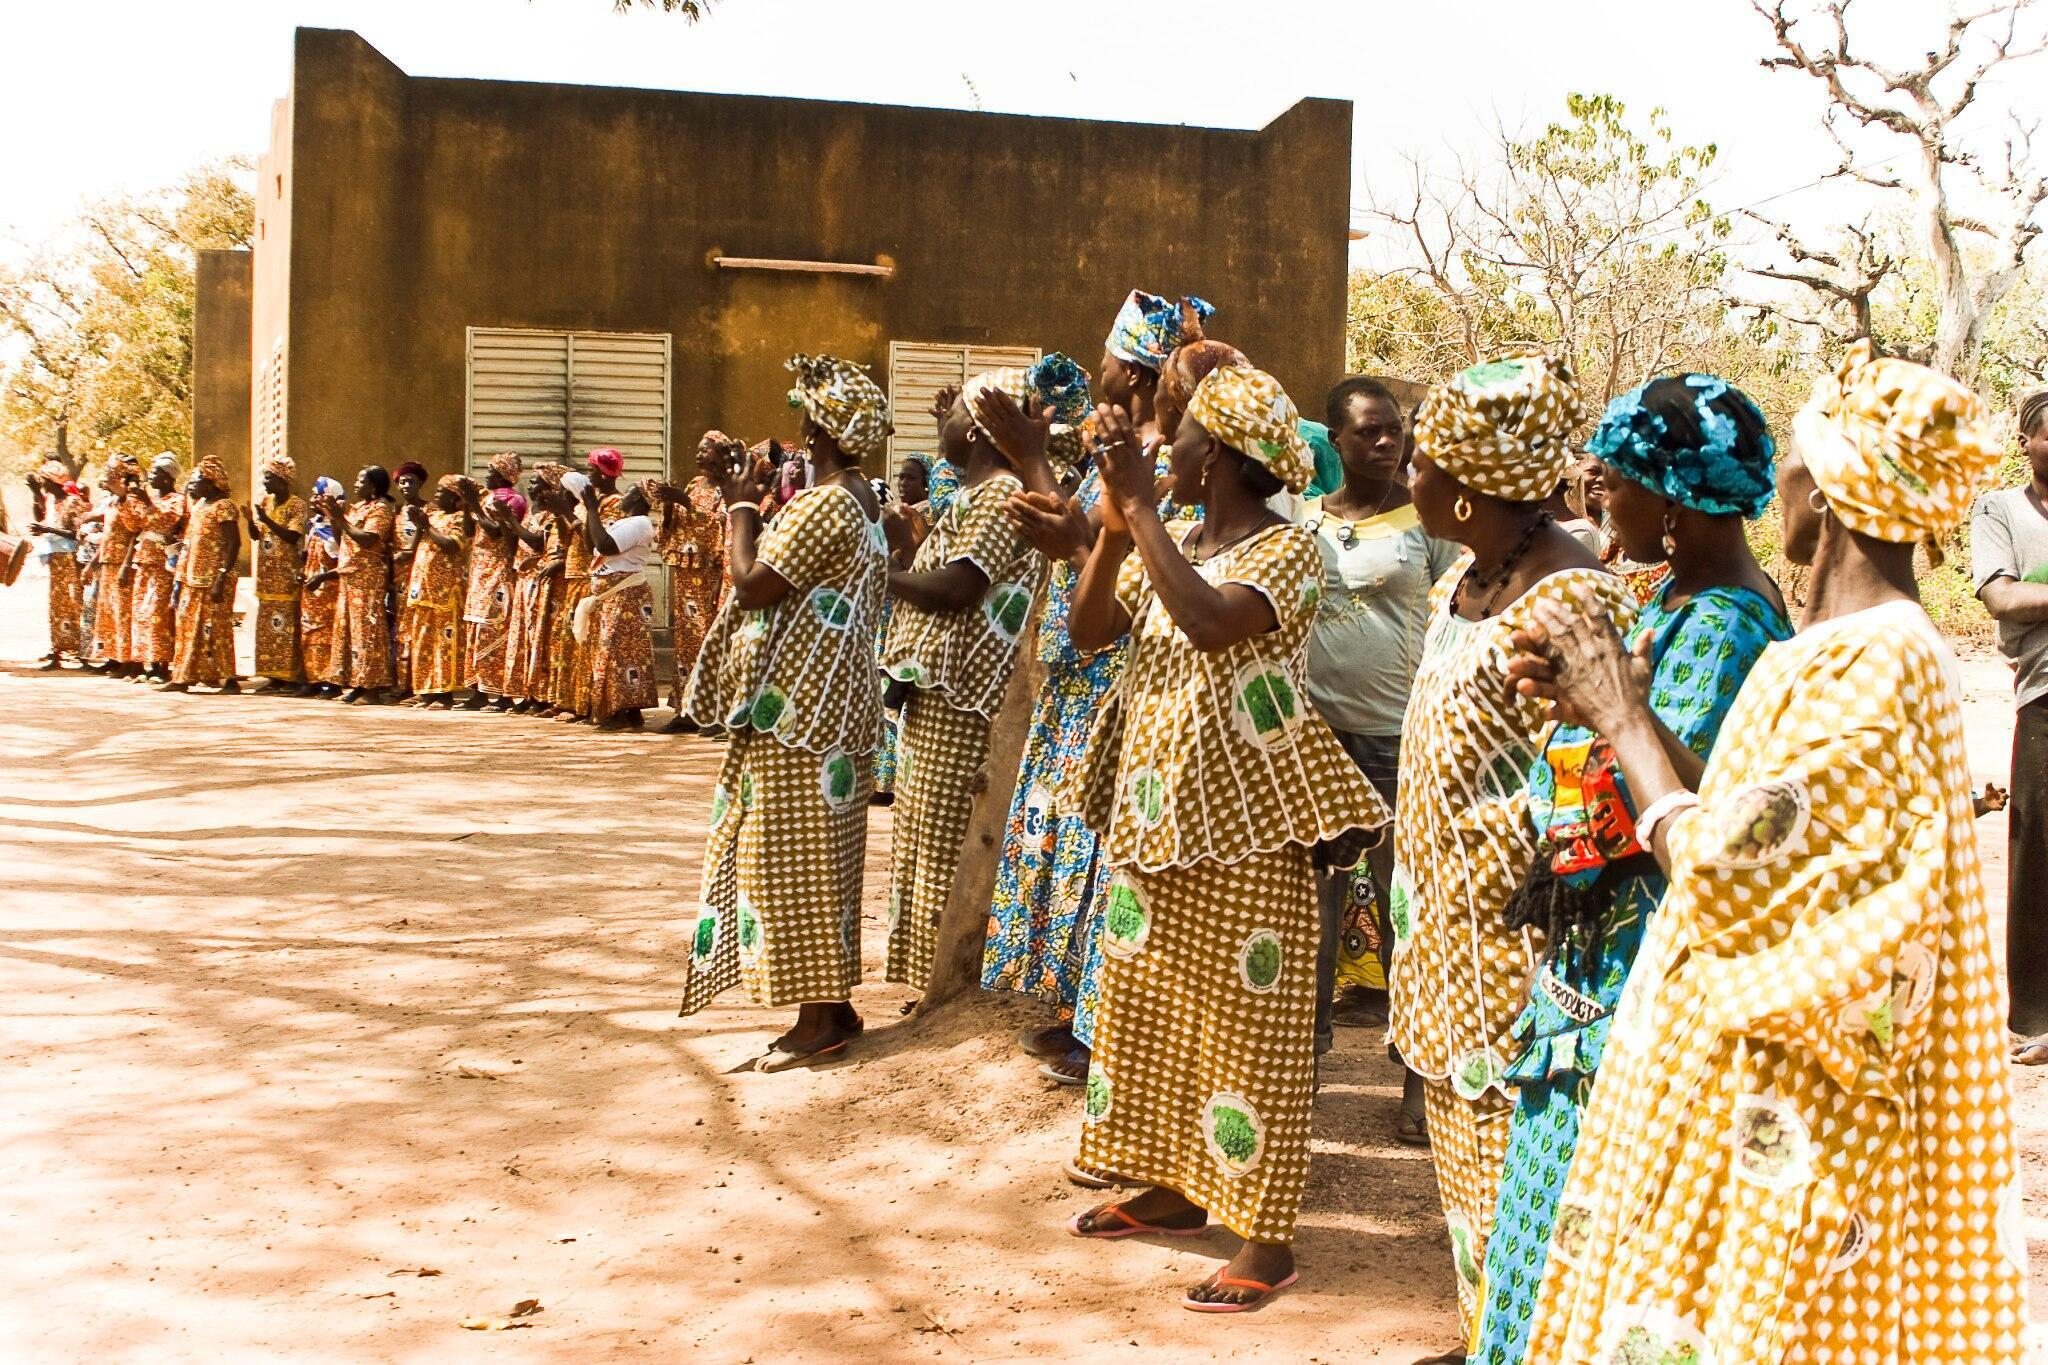 L'Occitane Foundation supports projects helping women in Burkina Faso